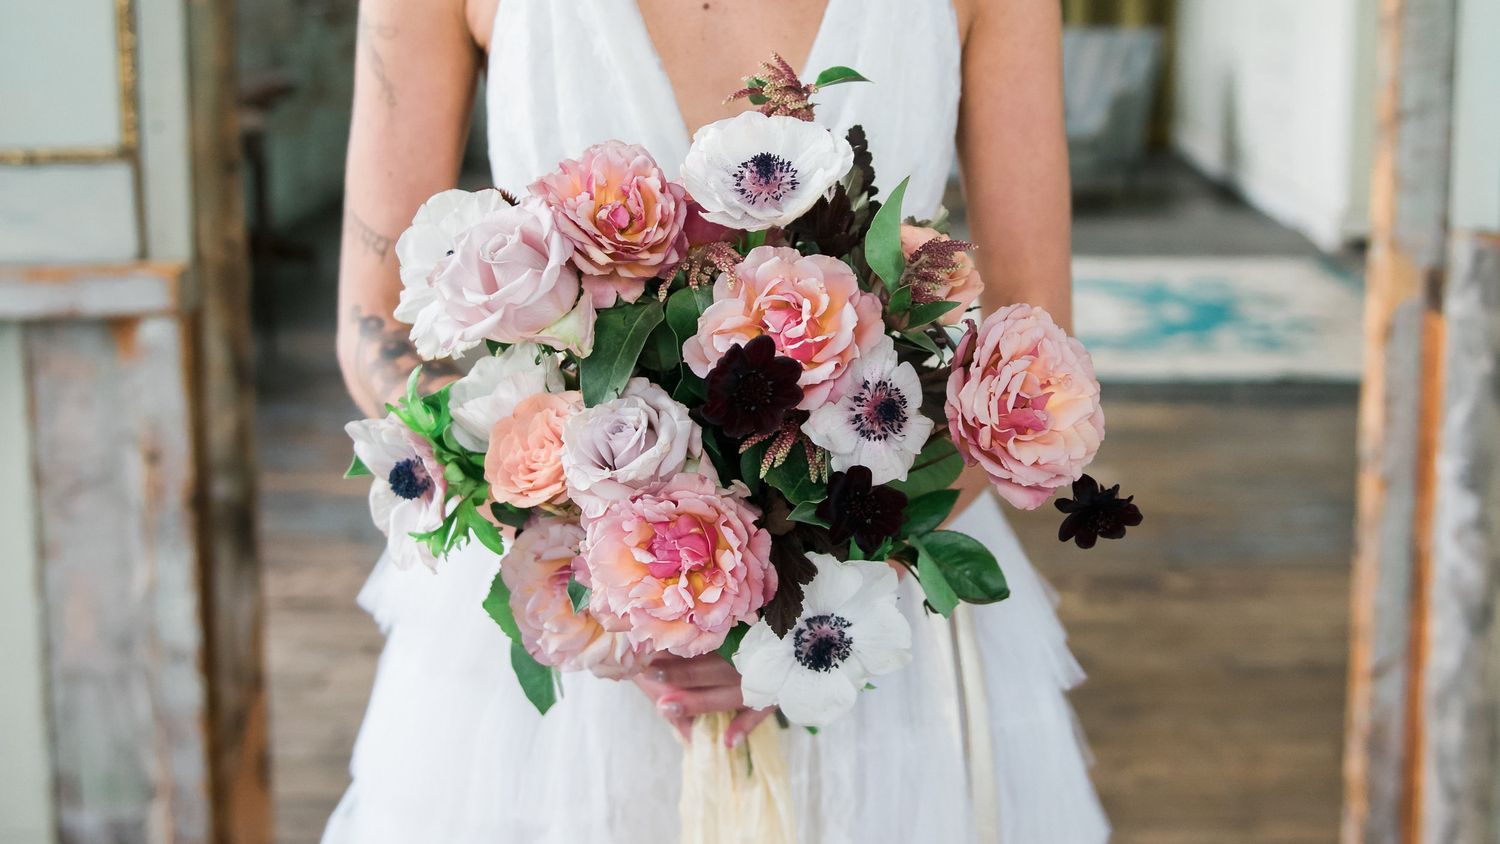 Browse the most beautiful wedding flowers to